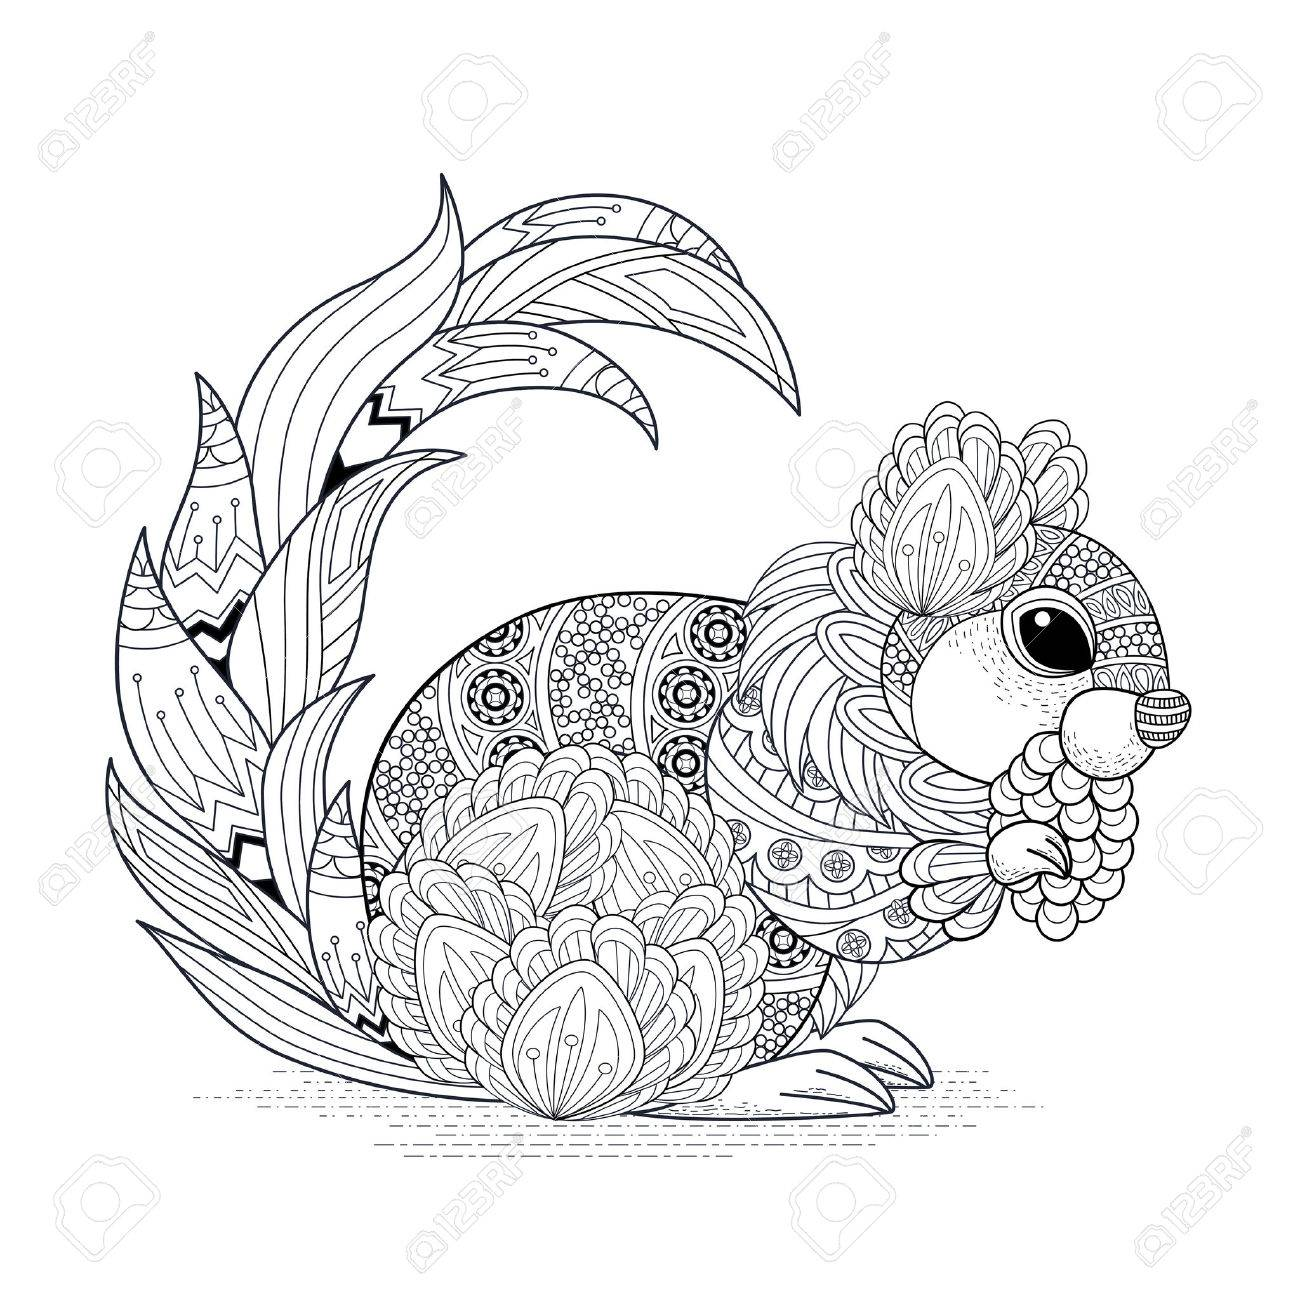 Squirrel Coloring Page Animal Coloring Page | PicGifs.com | 1300x1300